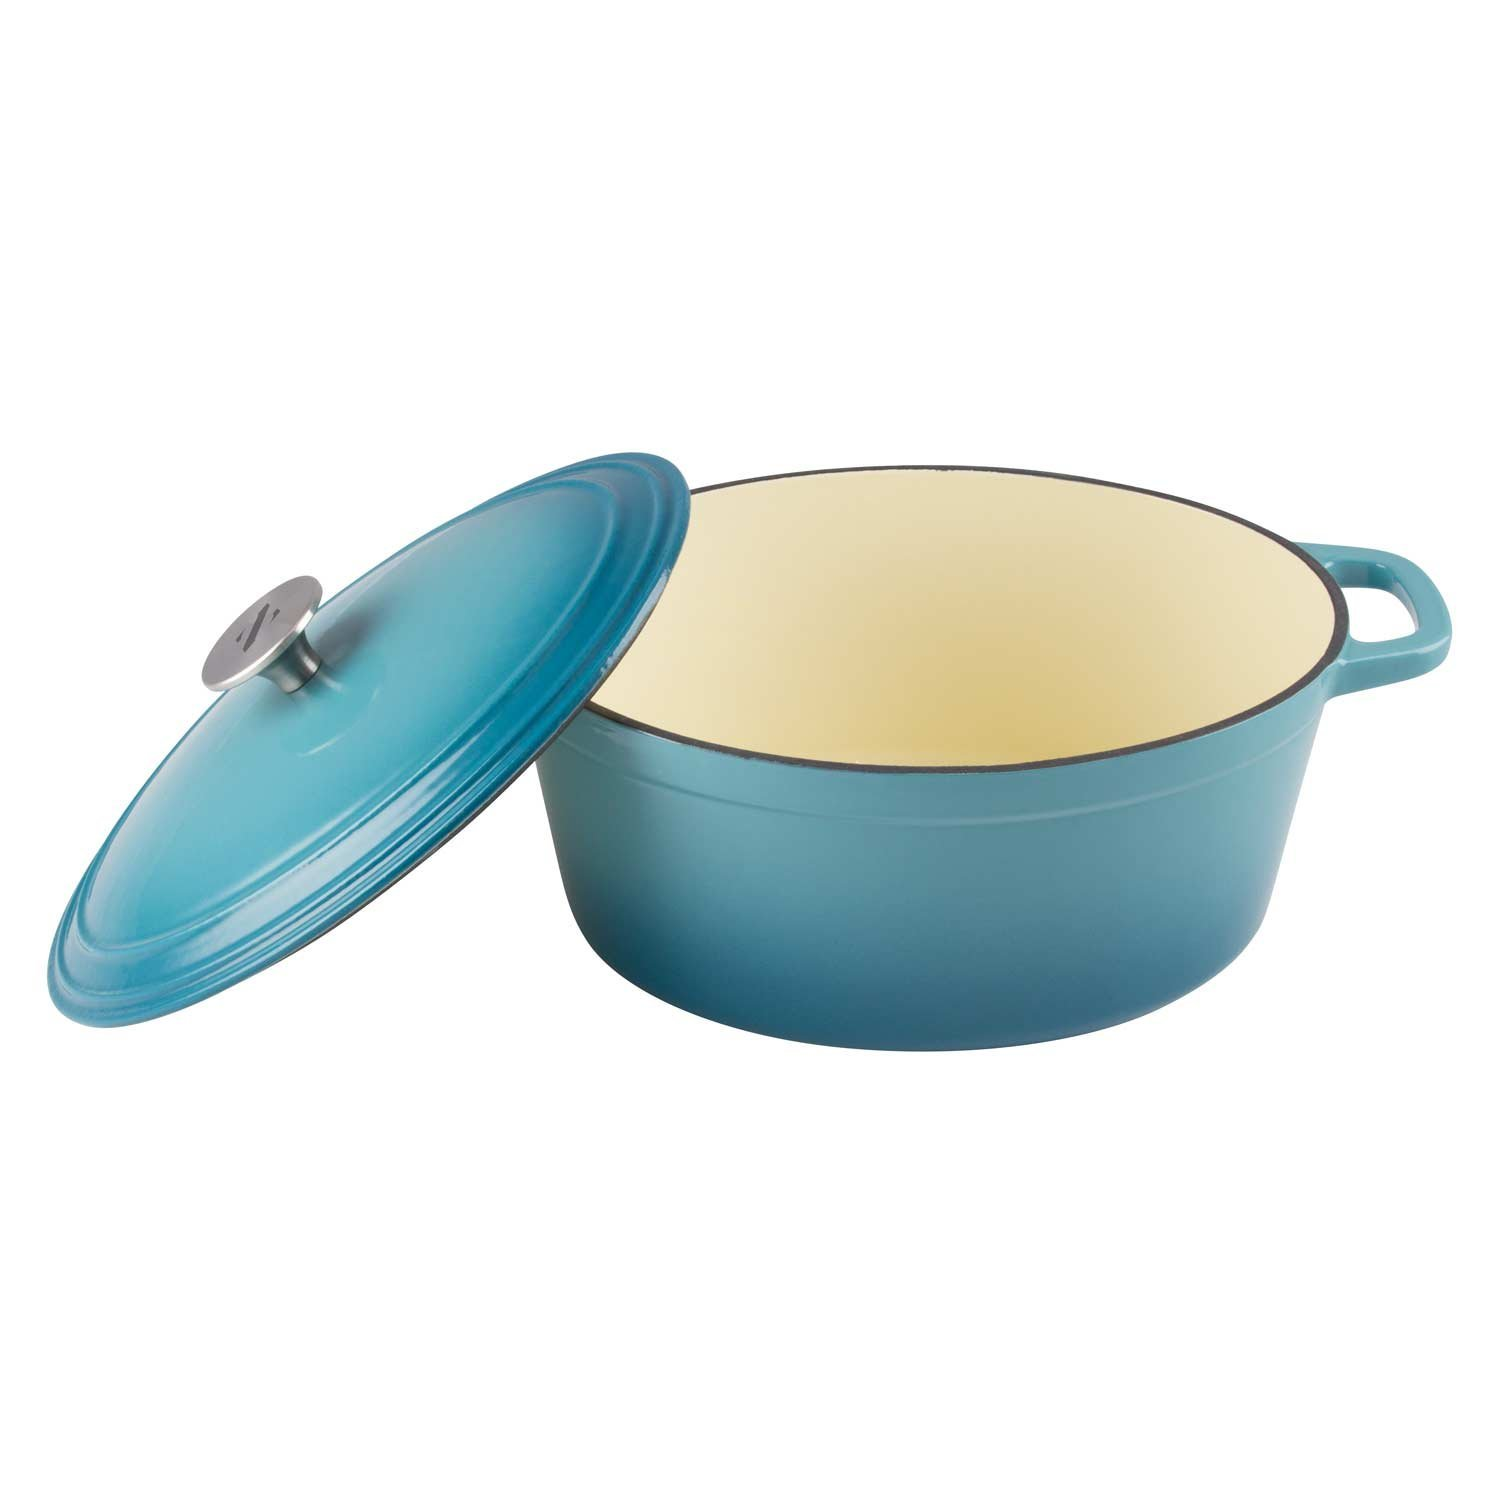 Zelancio Cookware 6-Quart Enameled Cast Iron Oval Dutch Oven Cooking Dish with Skillet Lid, Teal